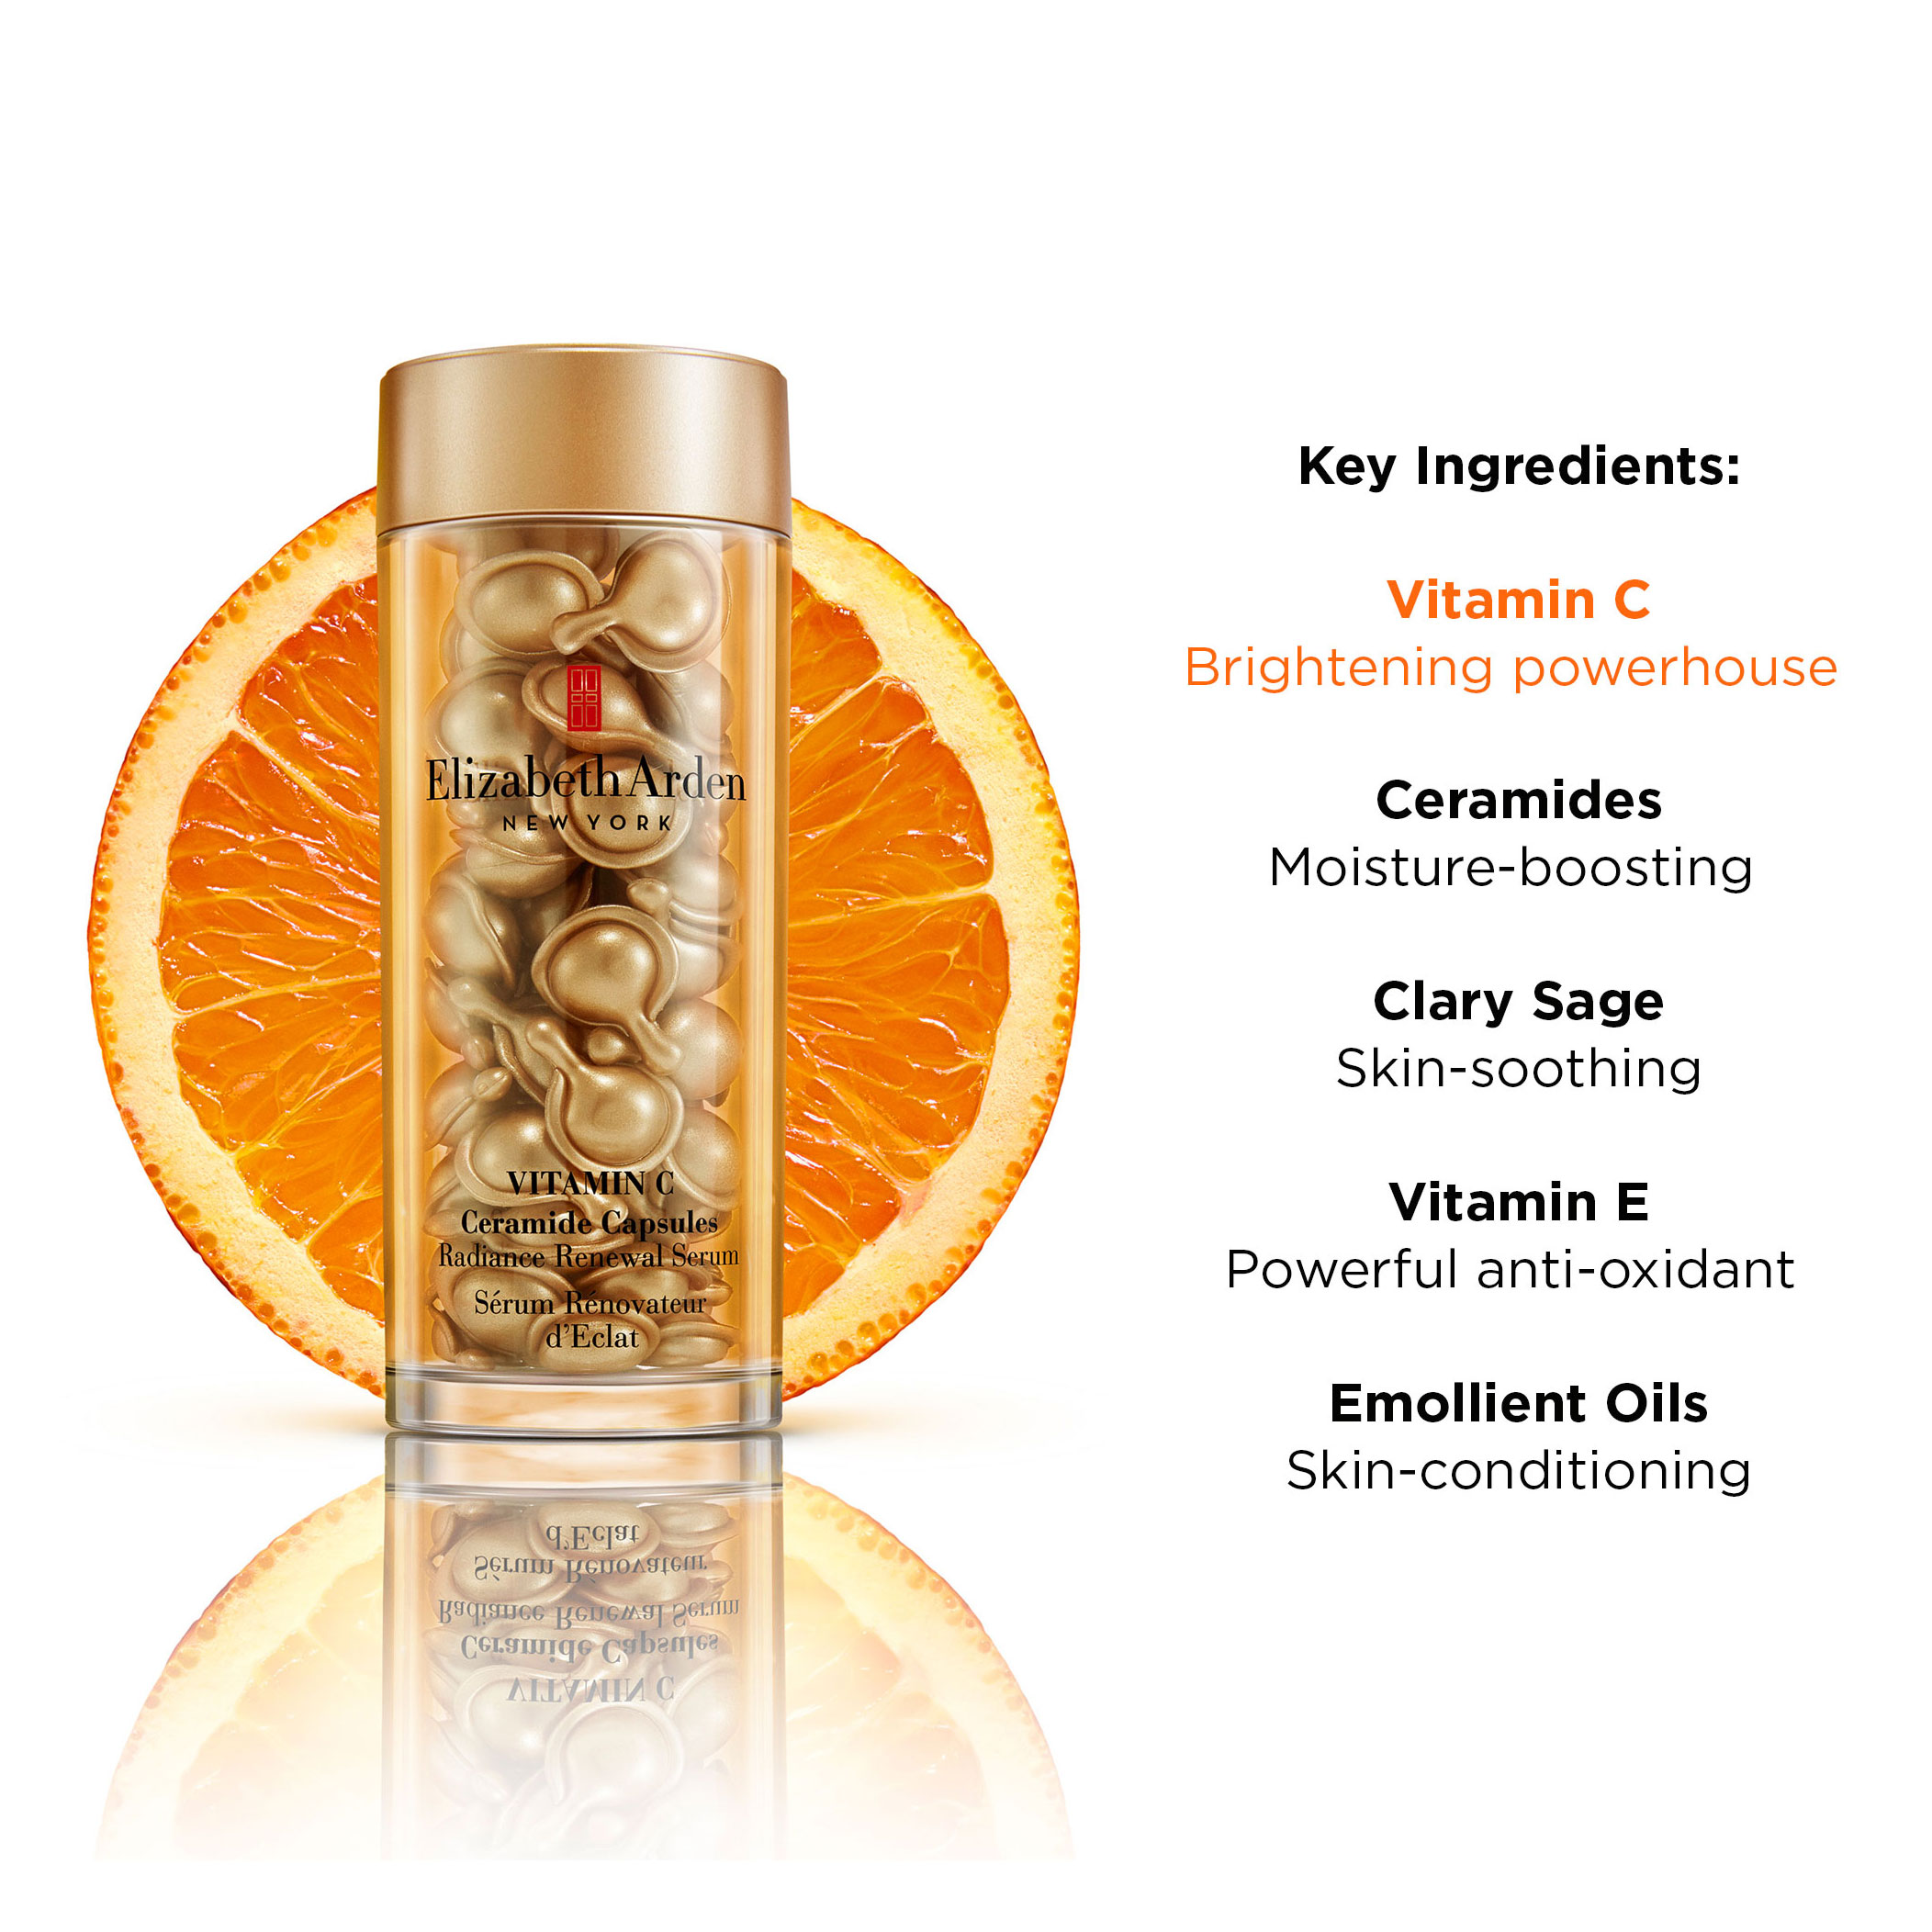 Key Ingredients: Vitamin C (Brightening powerhouse), Ceramides (Moisture-boosting), Clary Sage (Skin-soothing), Vitamin E (Powerful Anti-Oxidant), Emollient Oils (Skin-conditioning)